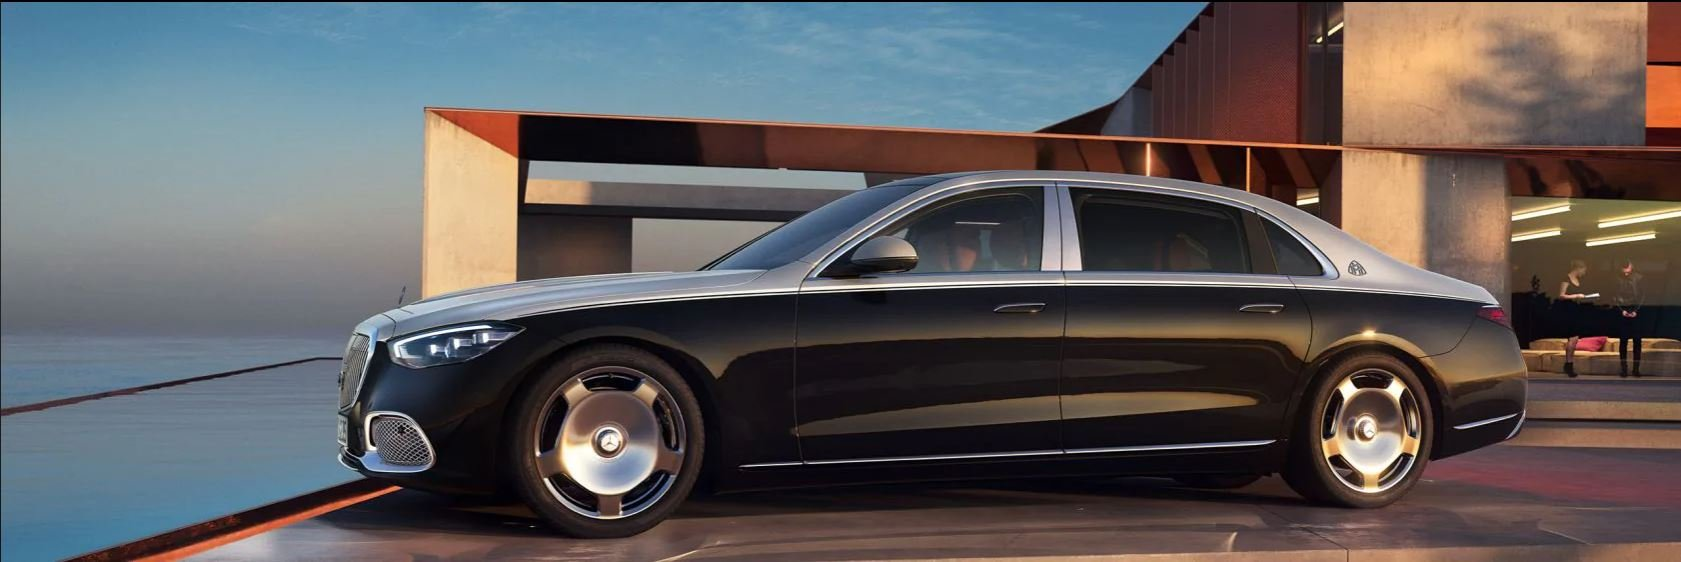 Mercedes-Maybach S-класса